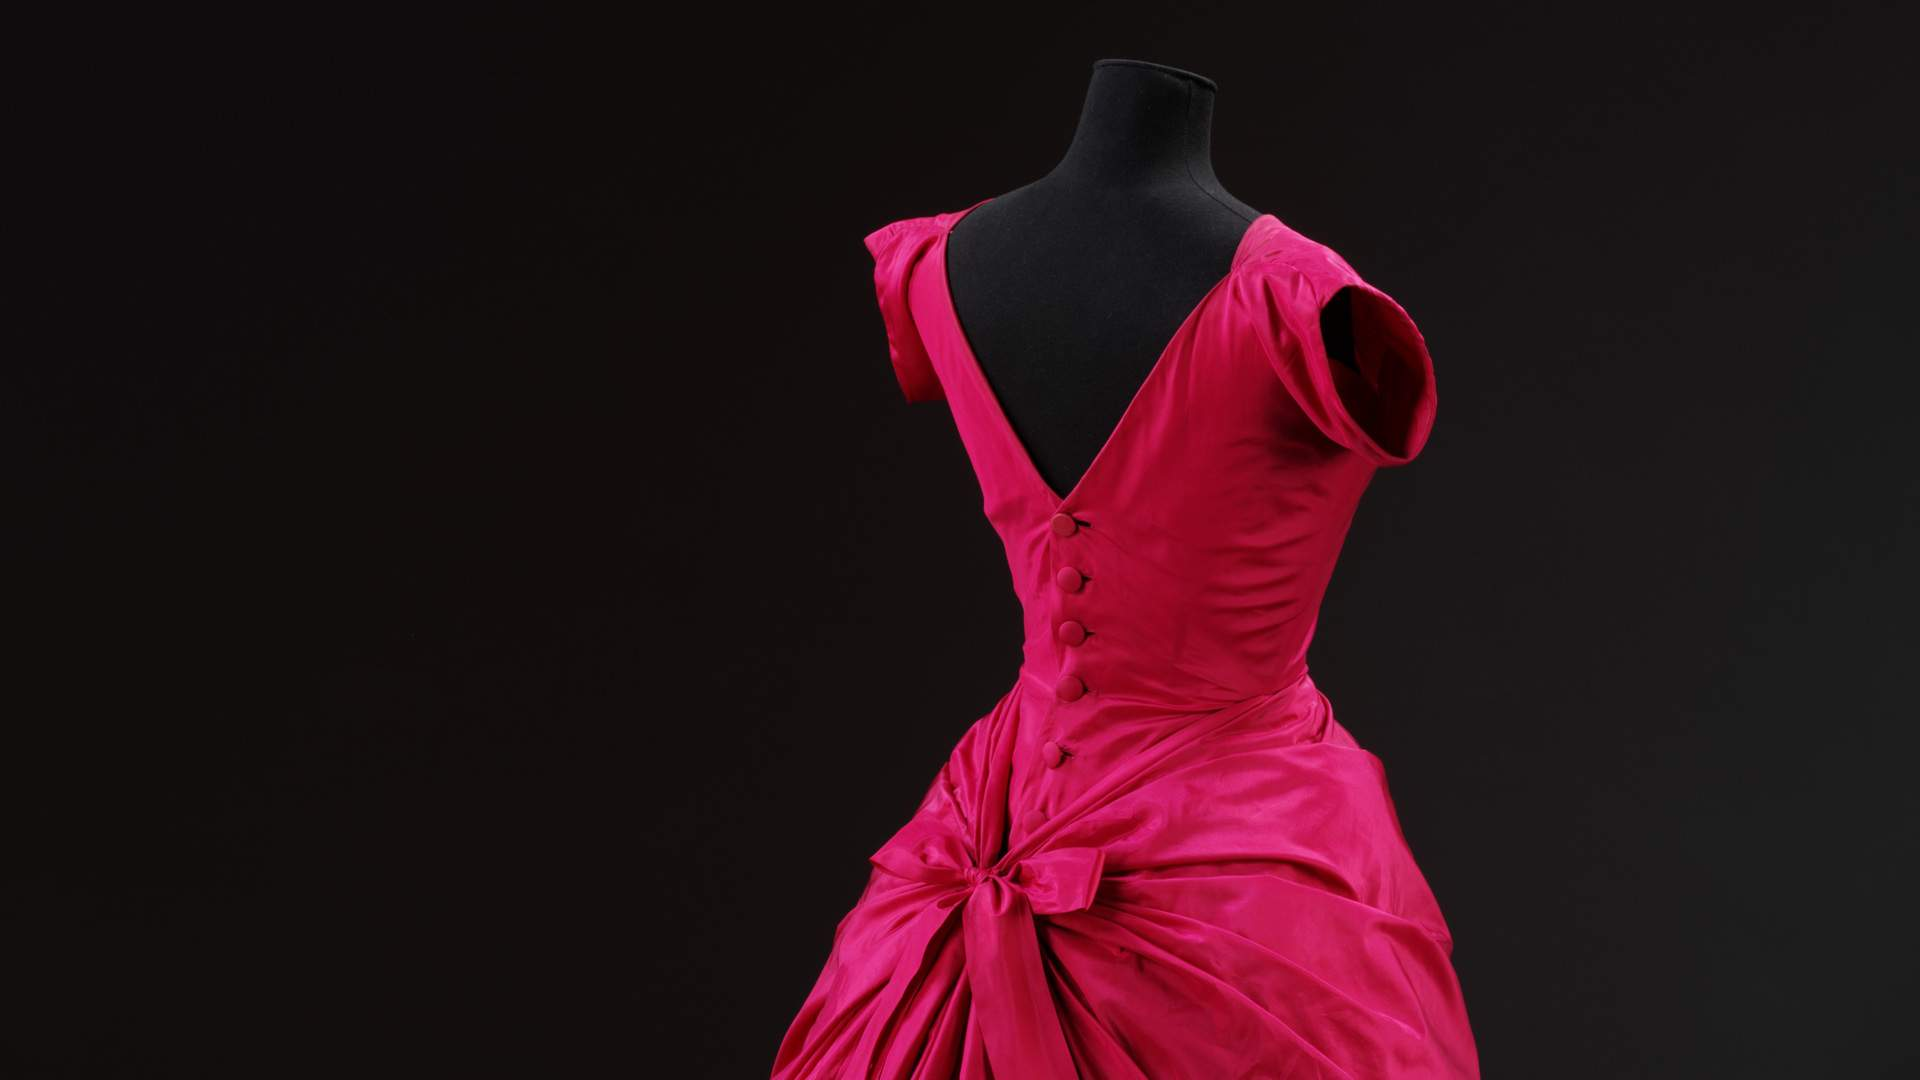 A Massive Balenciaga Exhibition Is Coming to the Bendigo Art Gallery This Winter